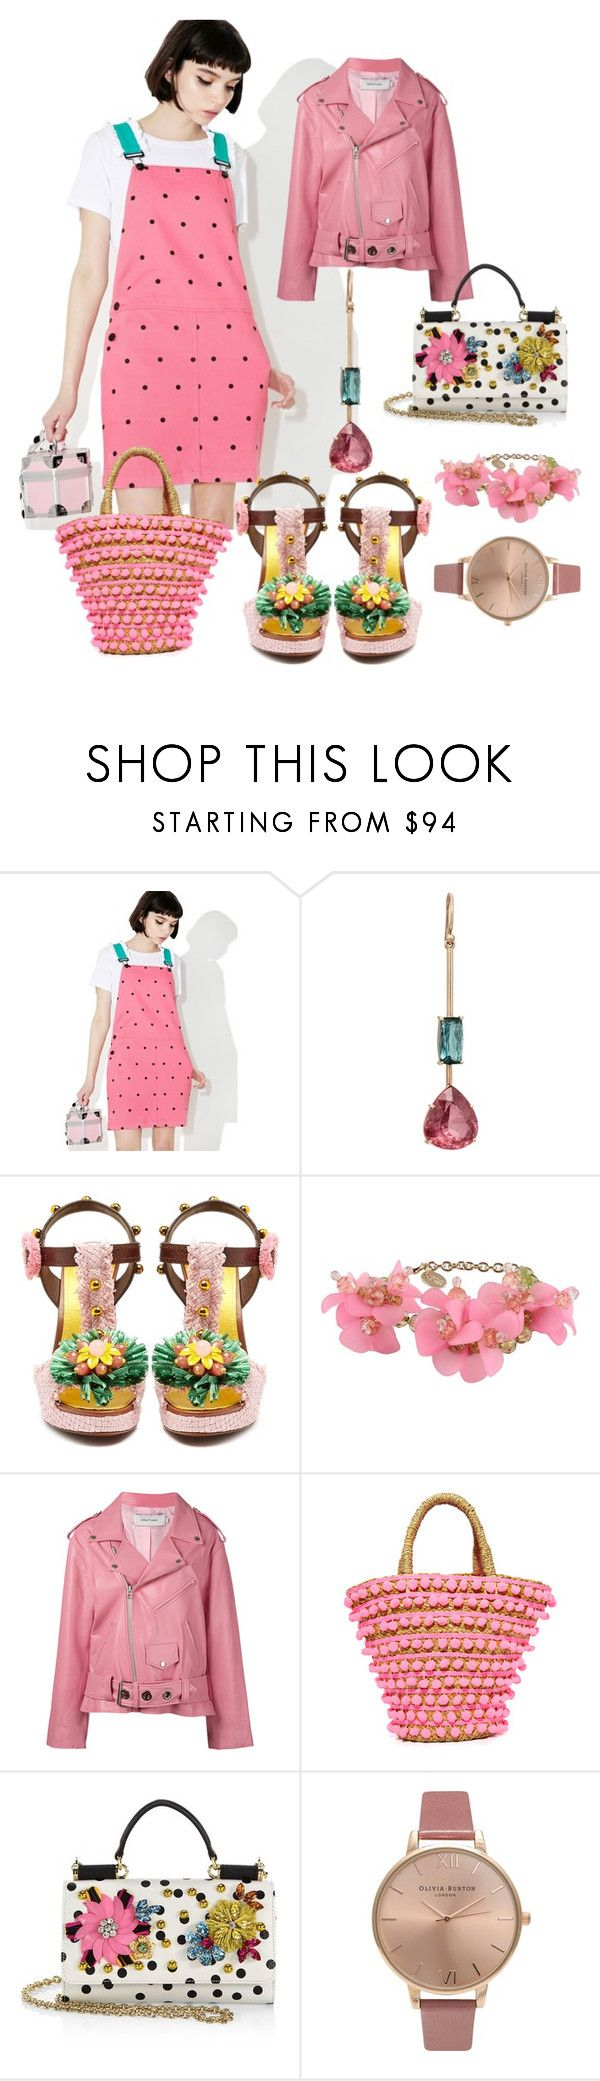 """""""Strawberry Pink Summer Jumper"""" by rosalindmarshall ❤ liked on Polyvore featuring Lazy Oaf, Irene Neuwirth, Dolce&Gabbana, RED Valentino, Marques'Almeida, Mystique and Olivia Burton"""